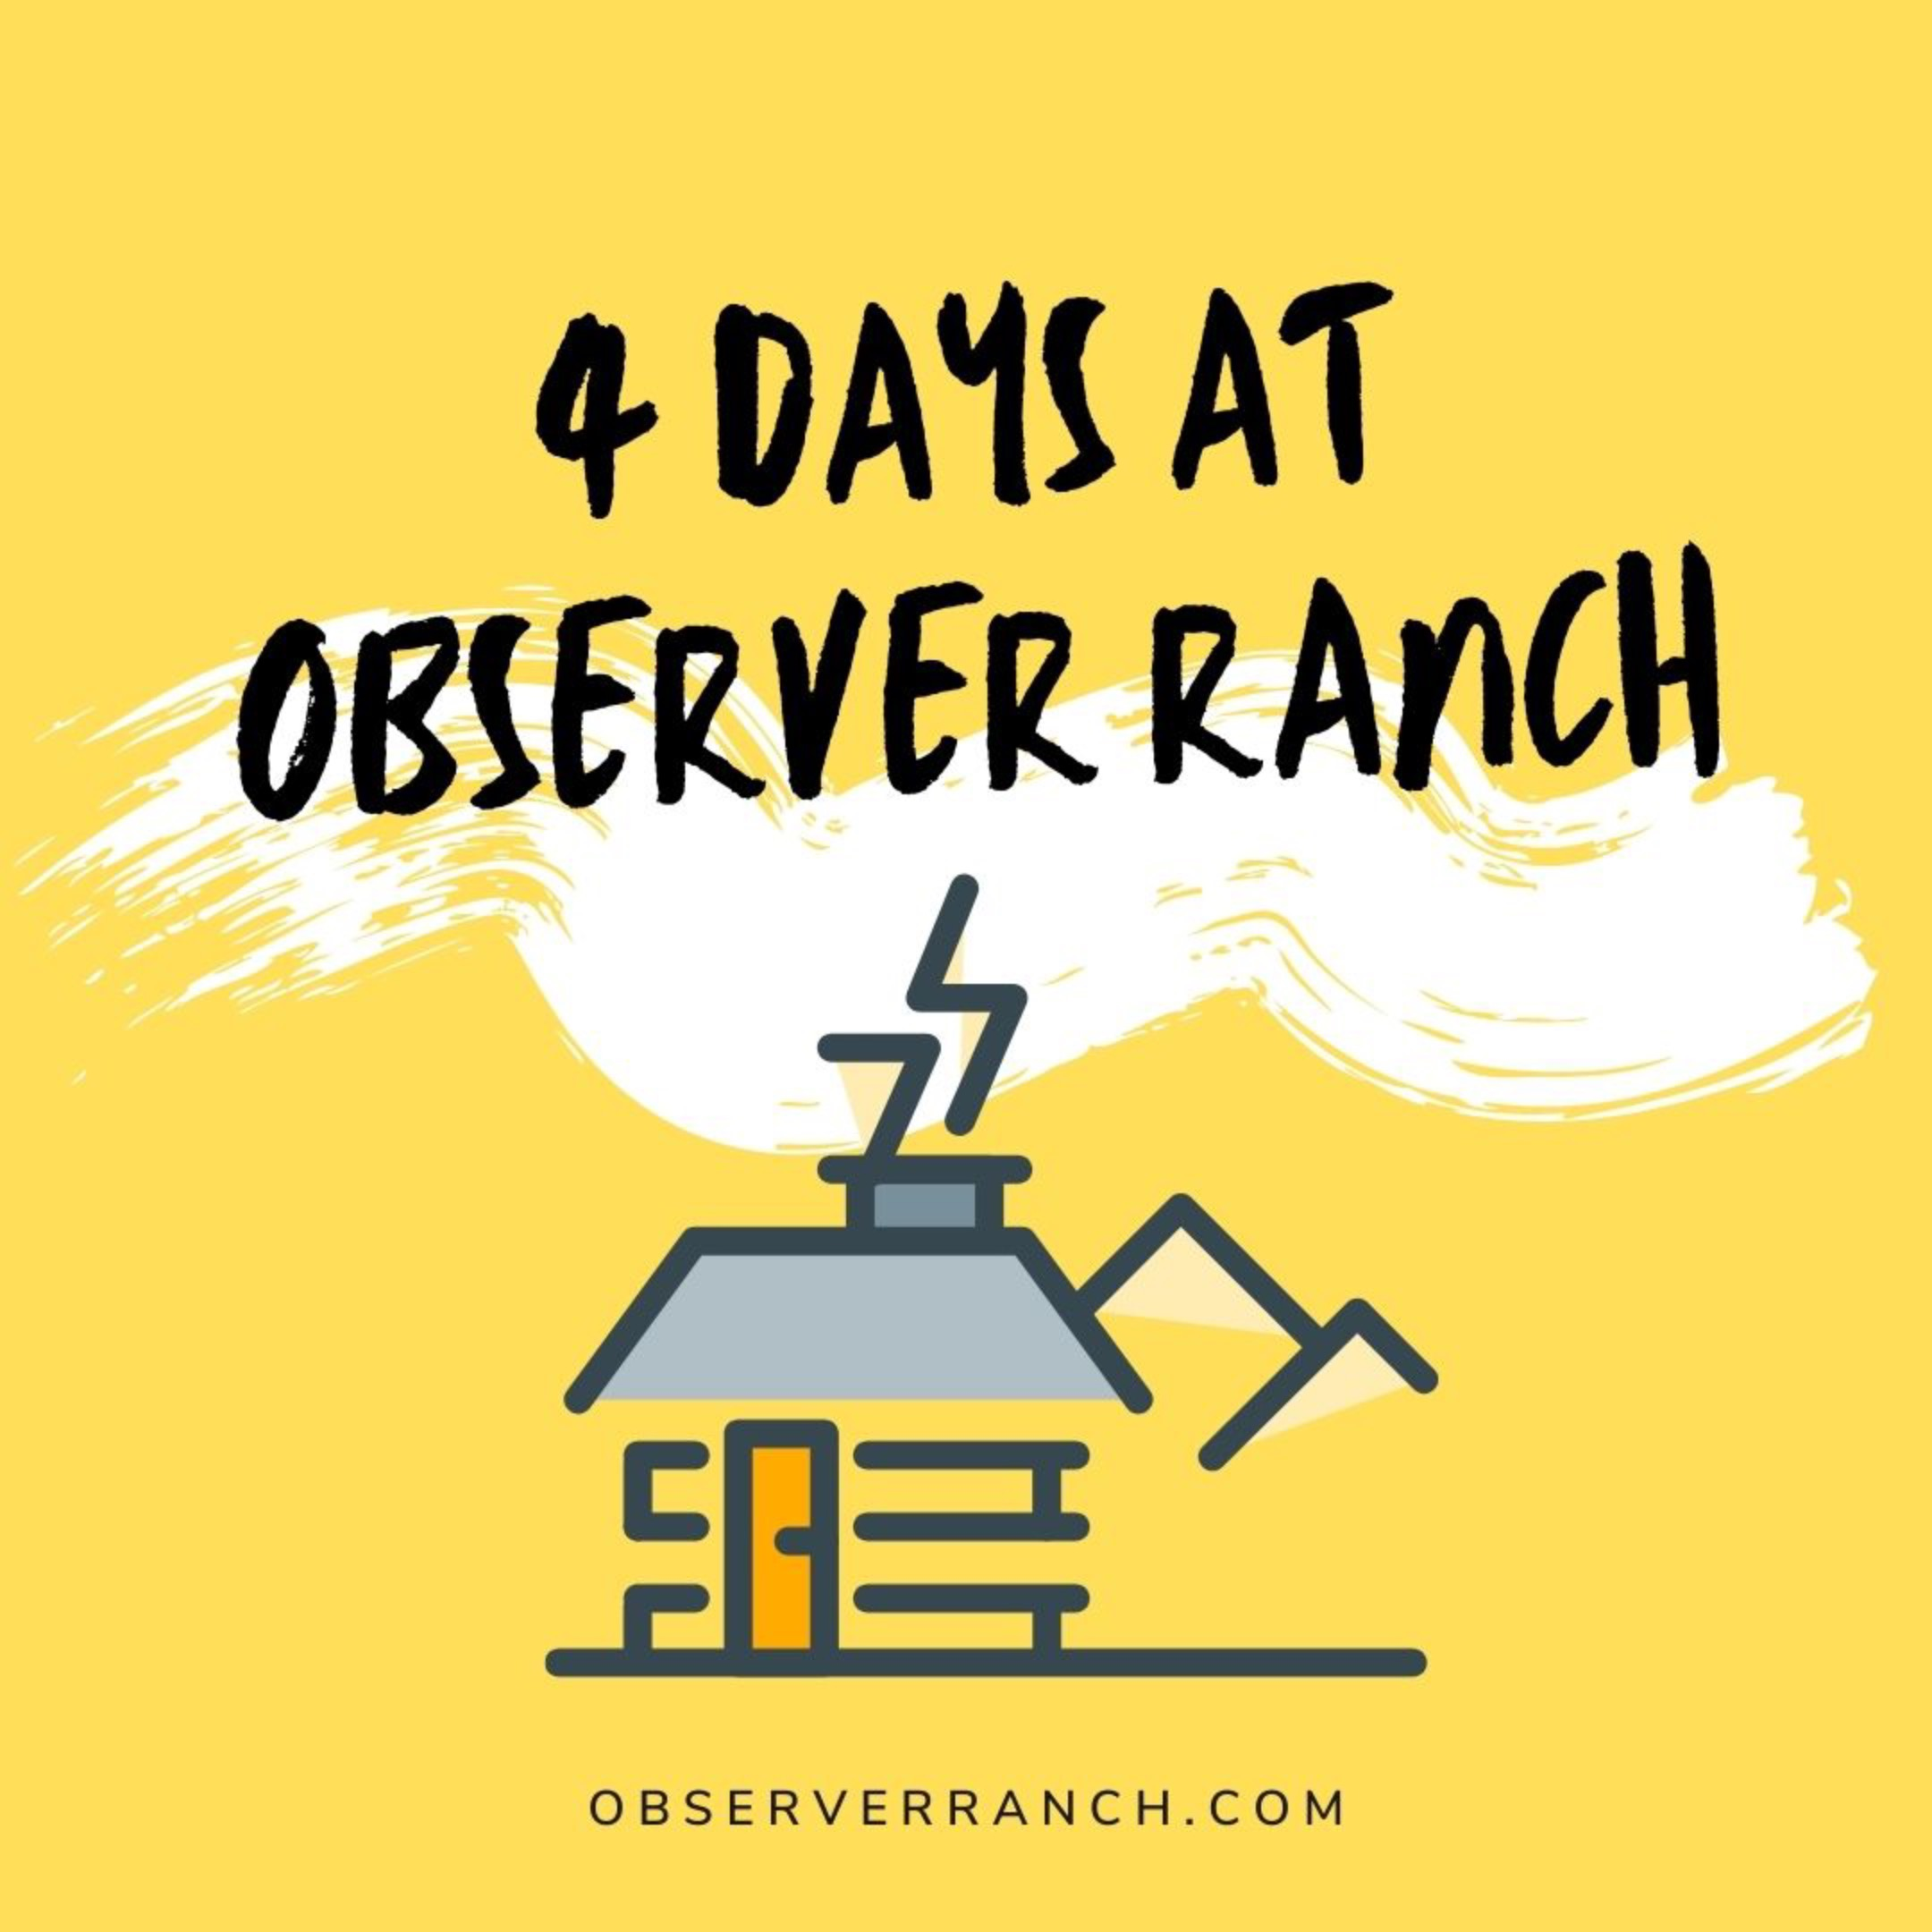 4 DAYS AT OBSERVER RANCH